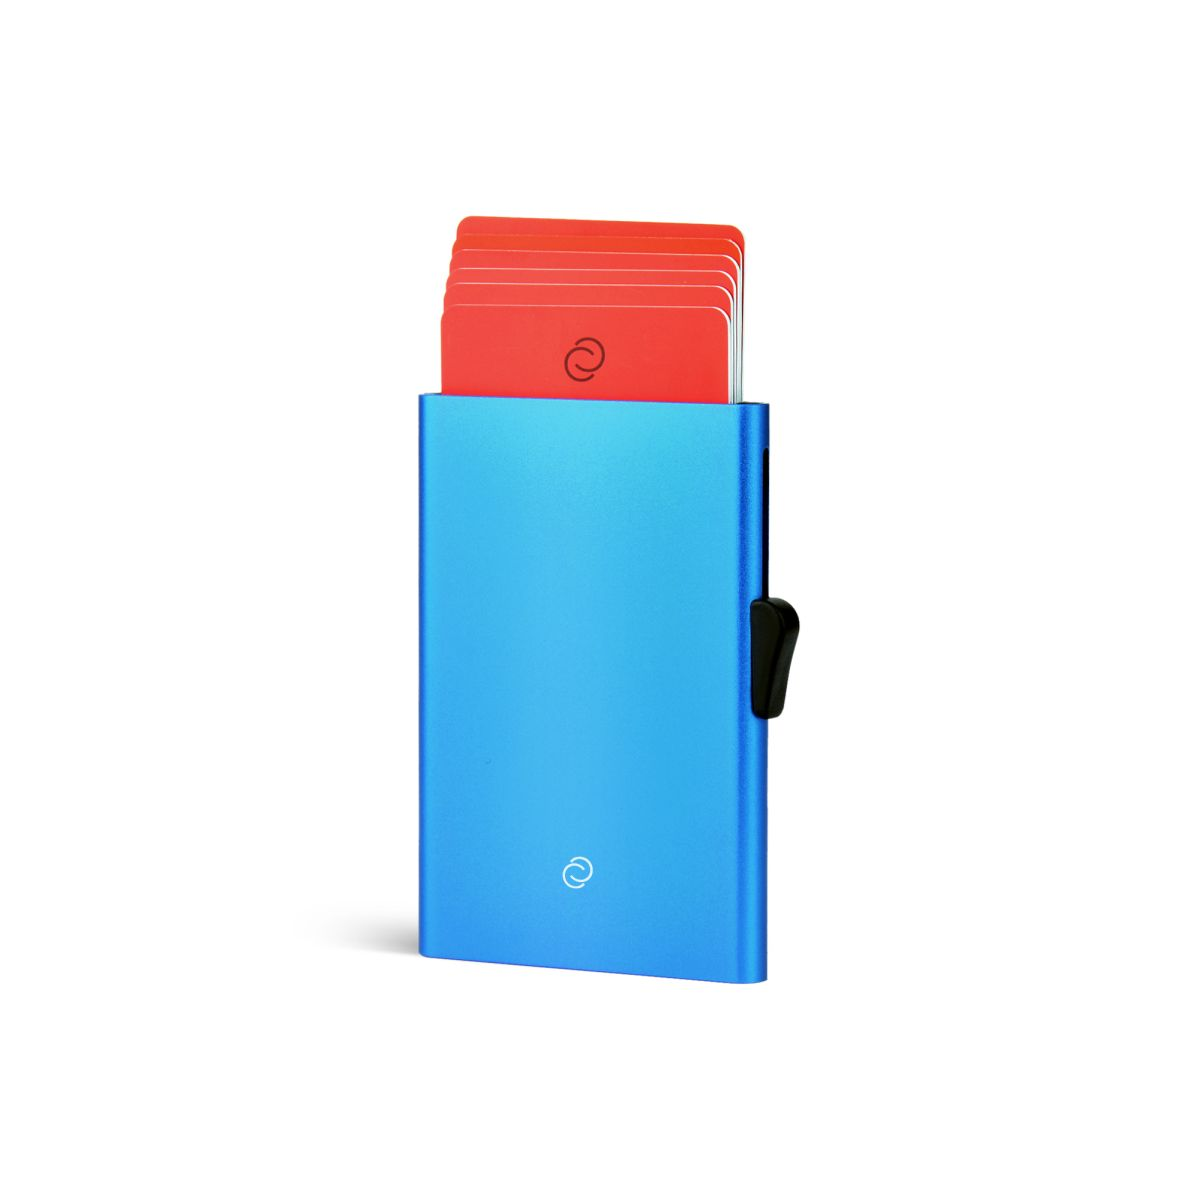 C-Secure Slim Aluminum Card Holder - Blue